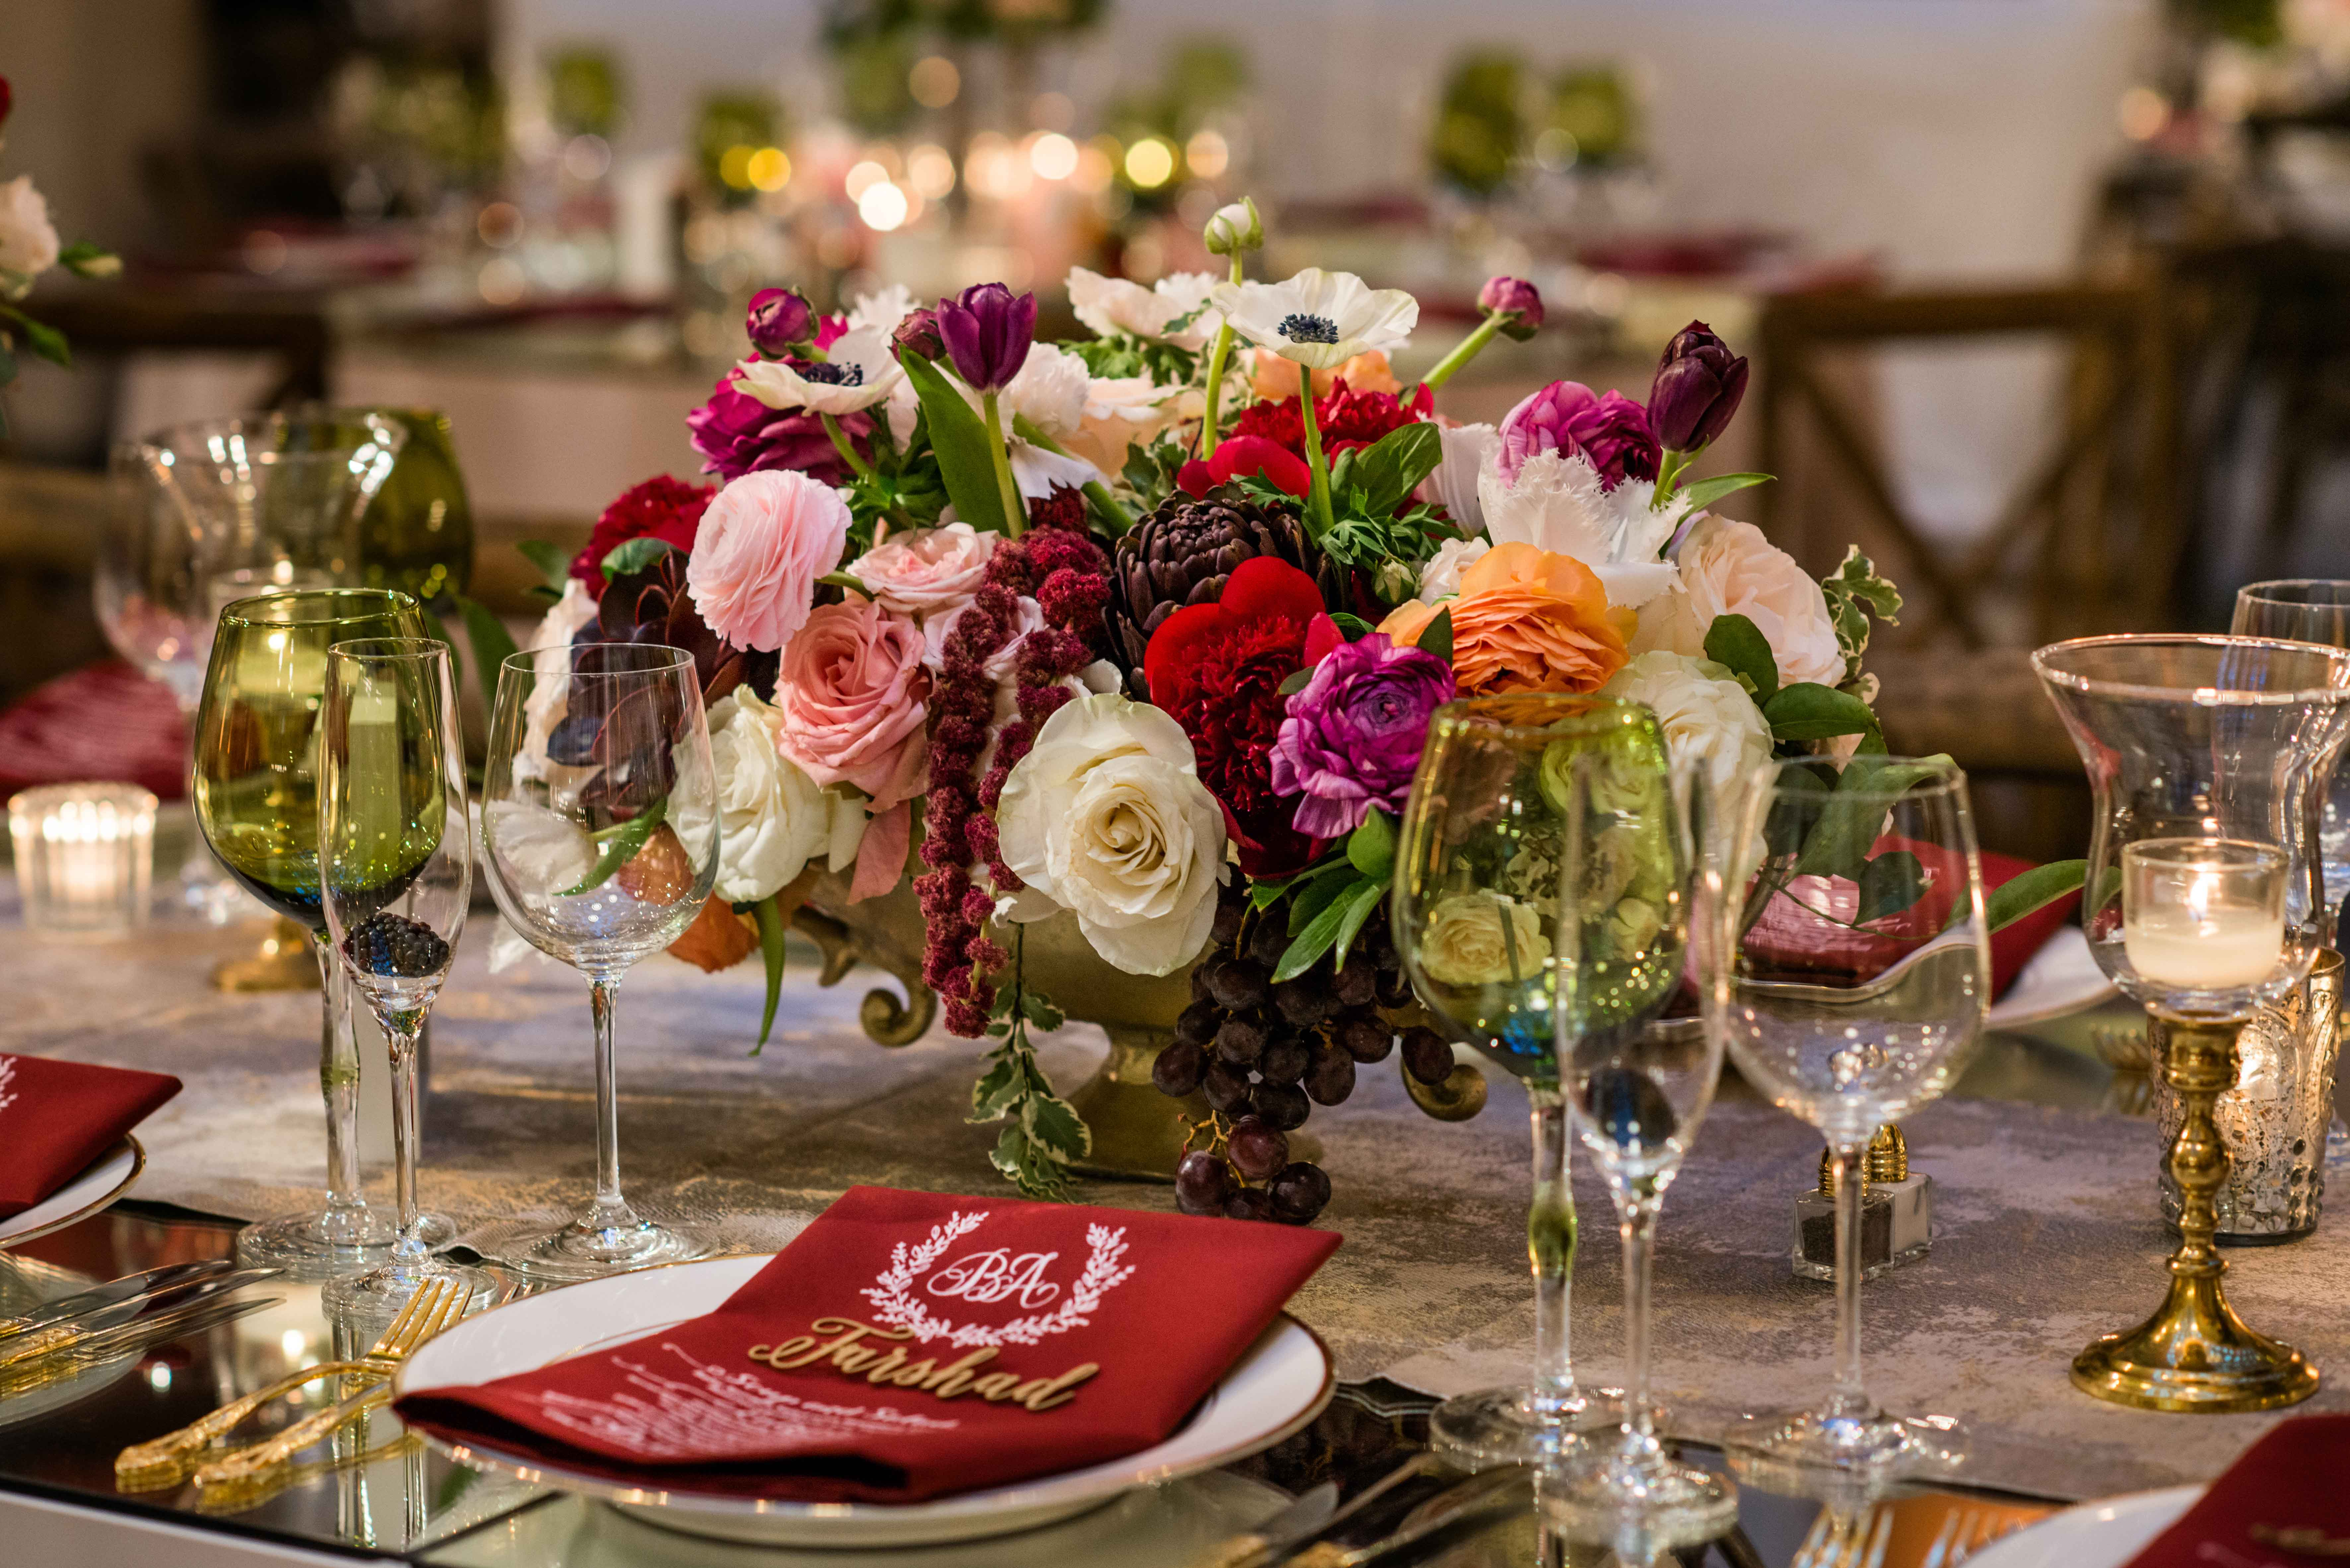 Marsala wedding ideas dark centerpiece flower fall inspired Inside Weddings winter 2017 issue